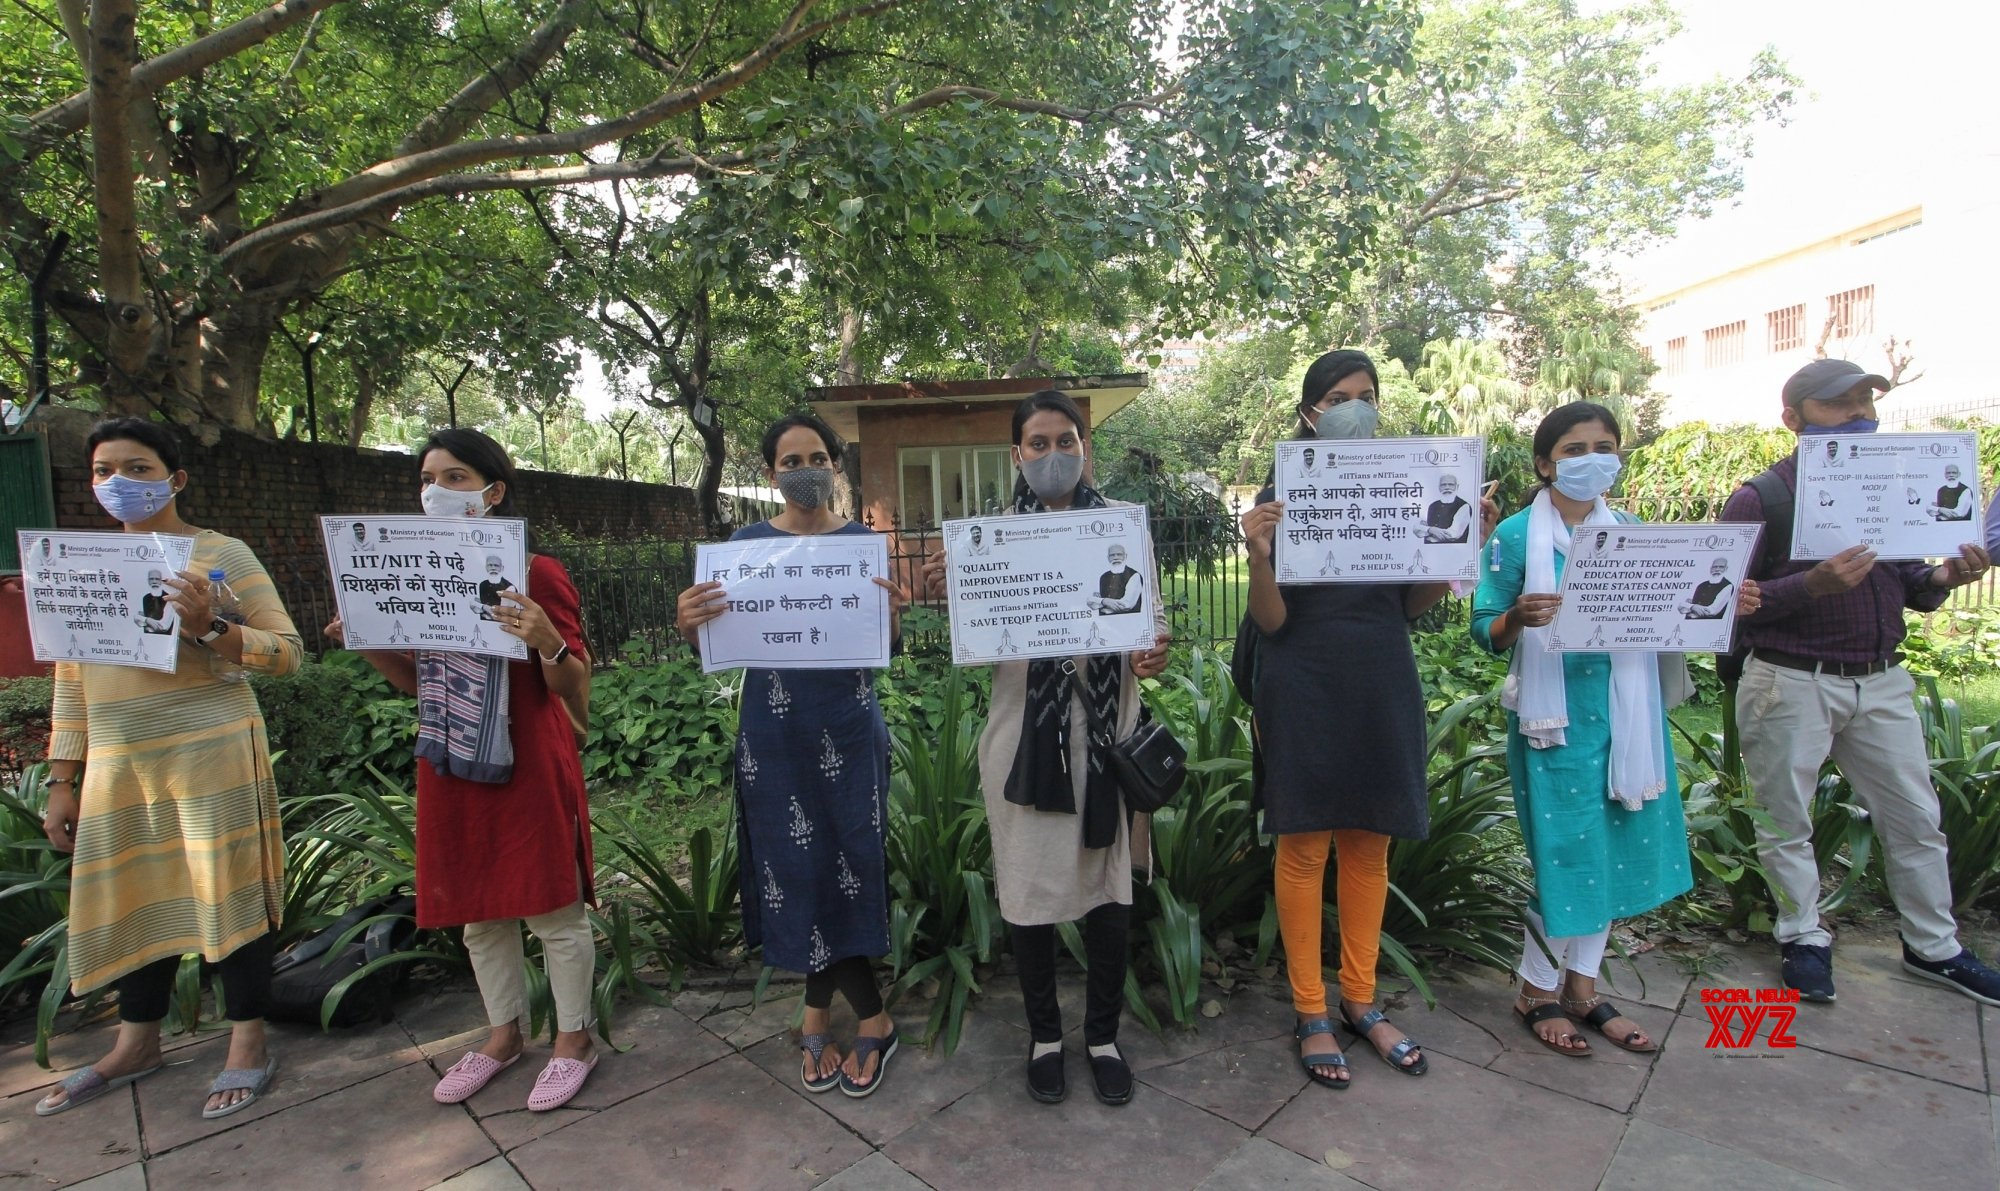 New Delhi : Assistant Professor of TEQIP hold a silent protest outside Education Ministry for their demand of a permanent job at Shastri Bhawan in New Delhi. #Gallery